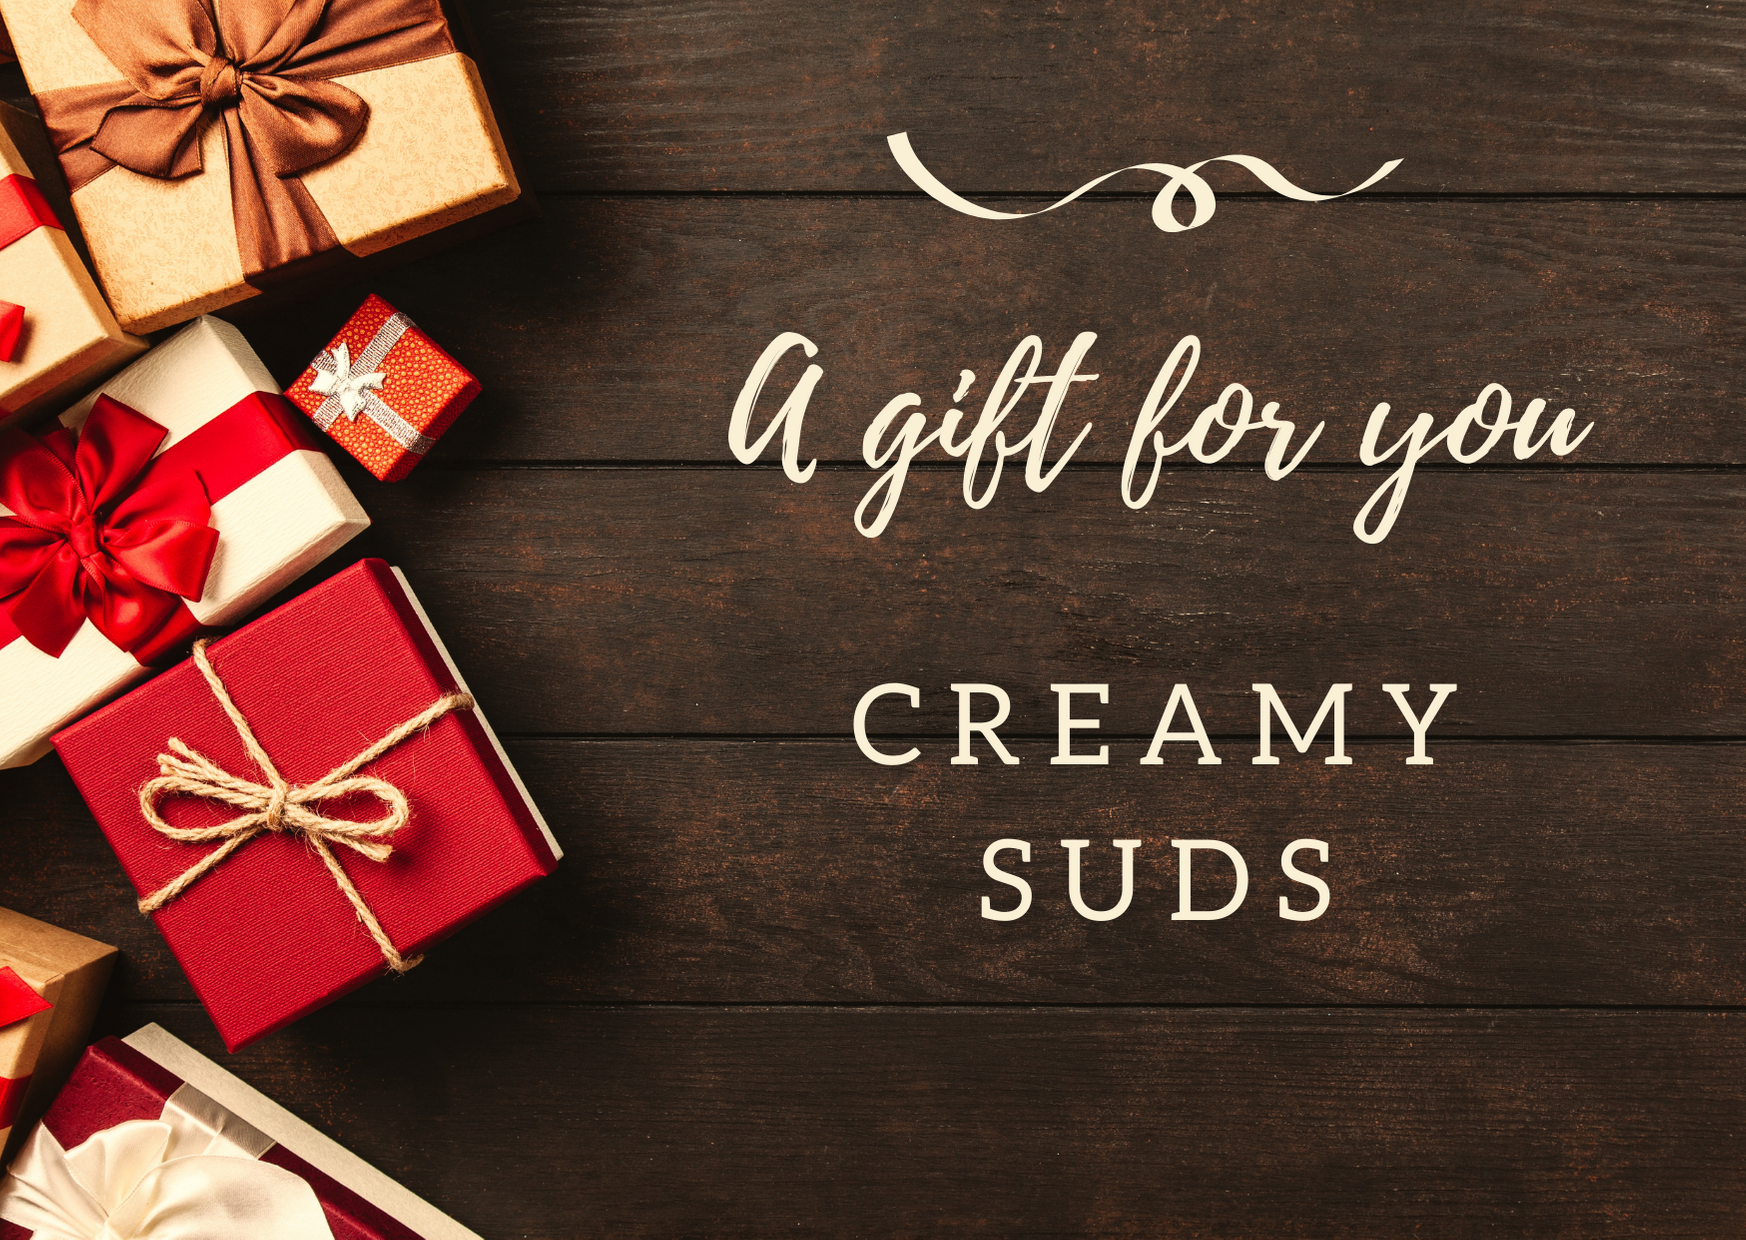 Not sure what handmade soaps your loved ones would prefer but would want them to join the Creamy Suds family? This gift card has got you covered. An easy way to treat a loved one to something nice.